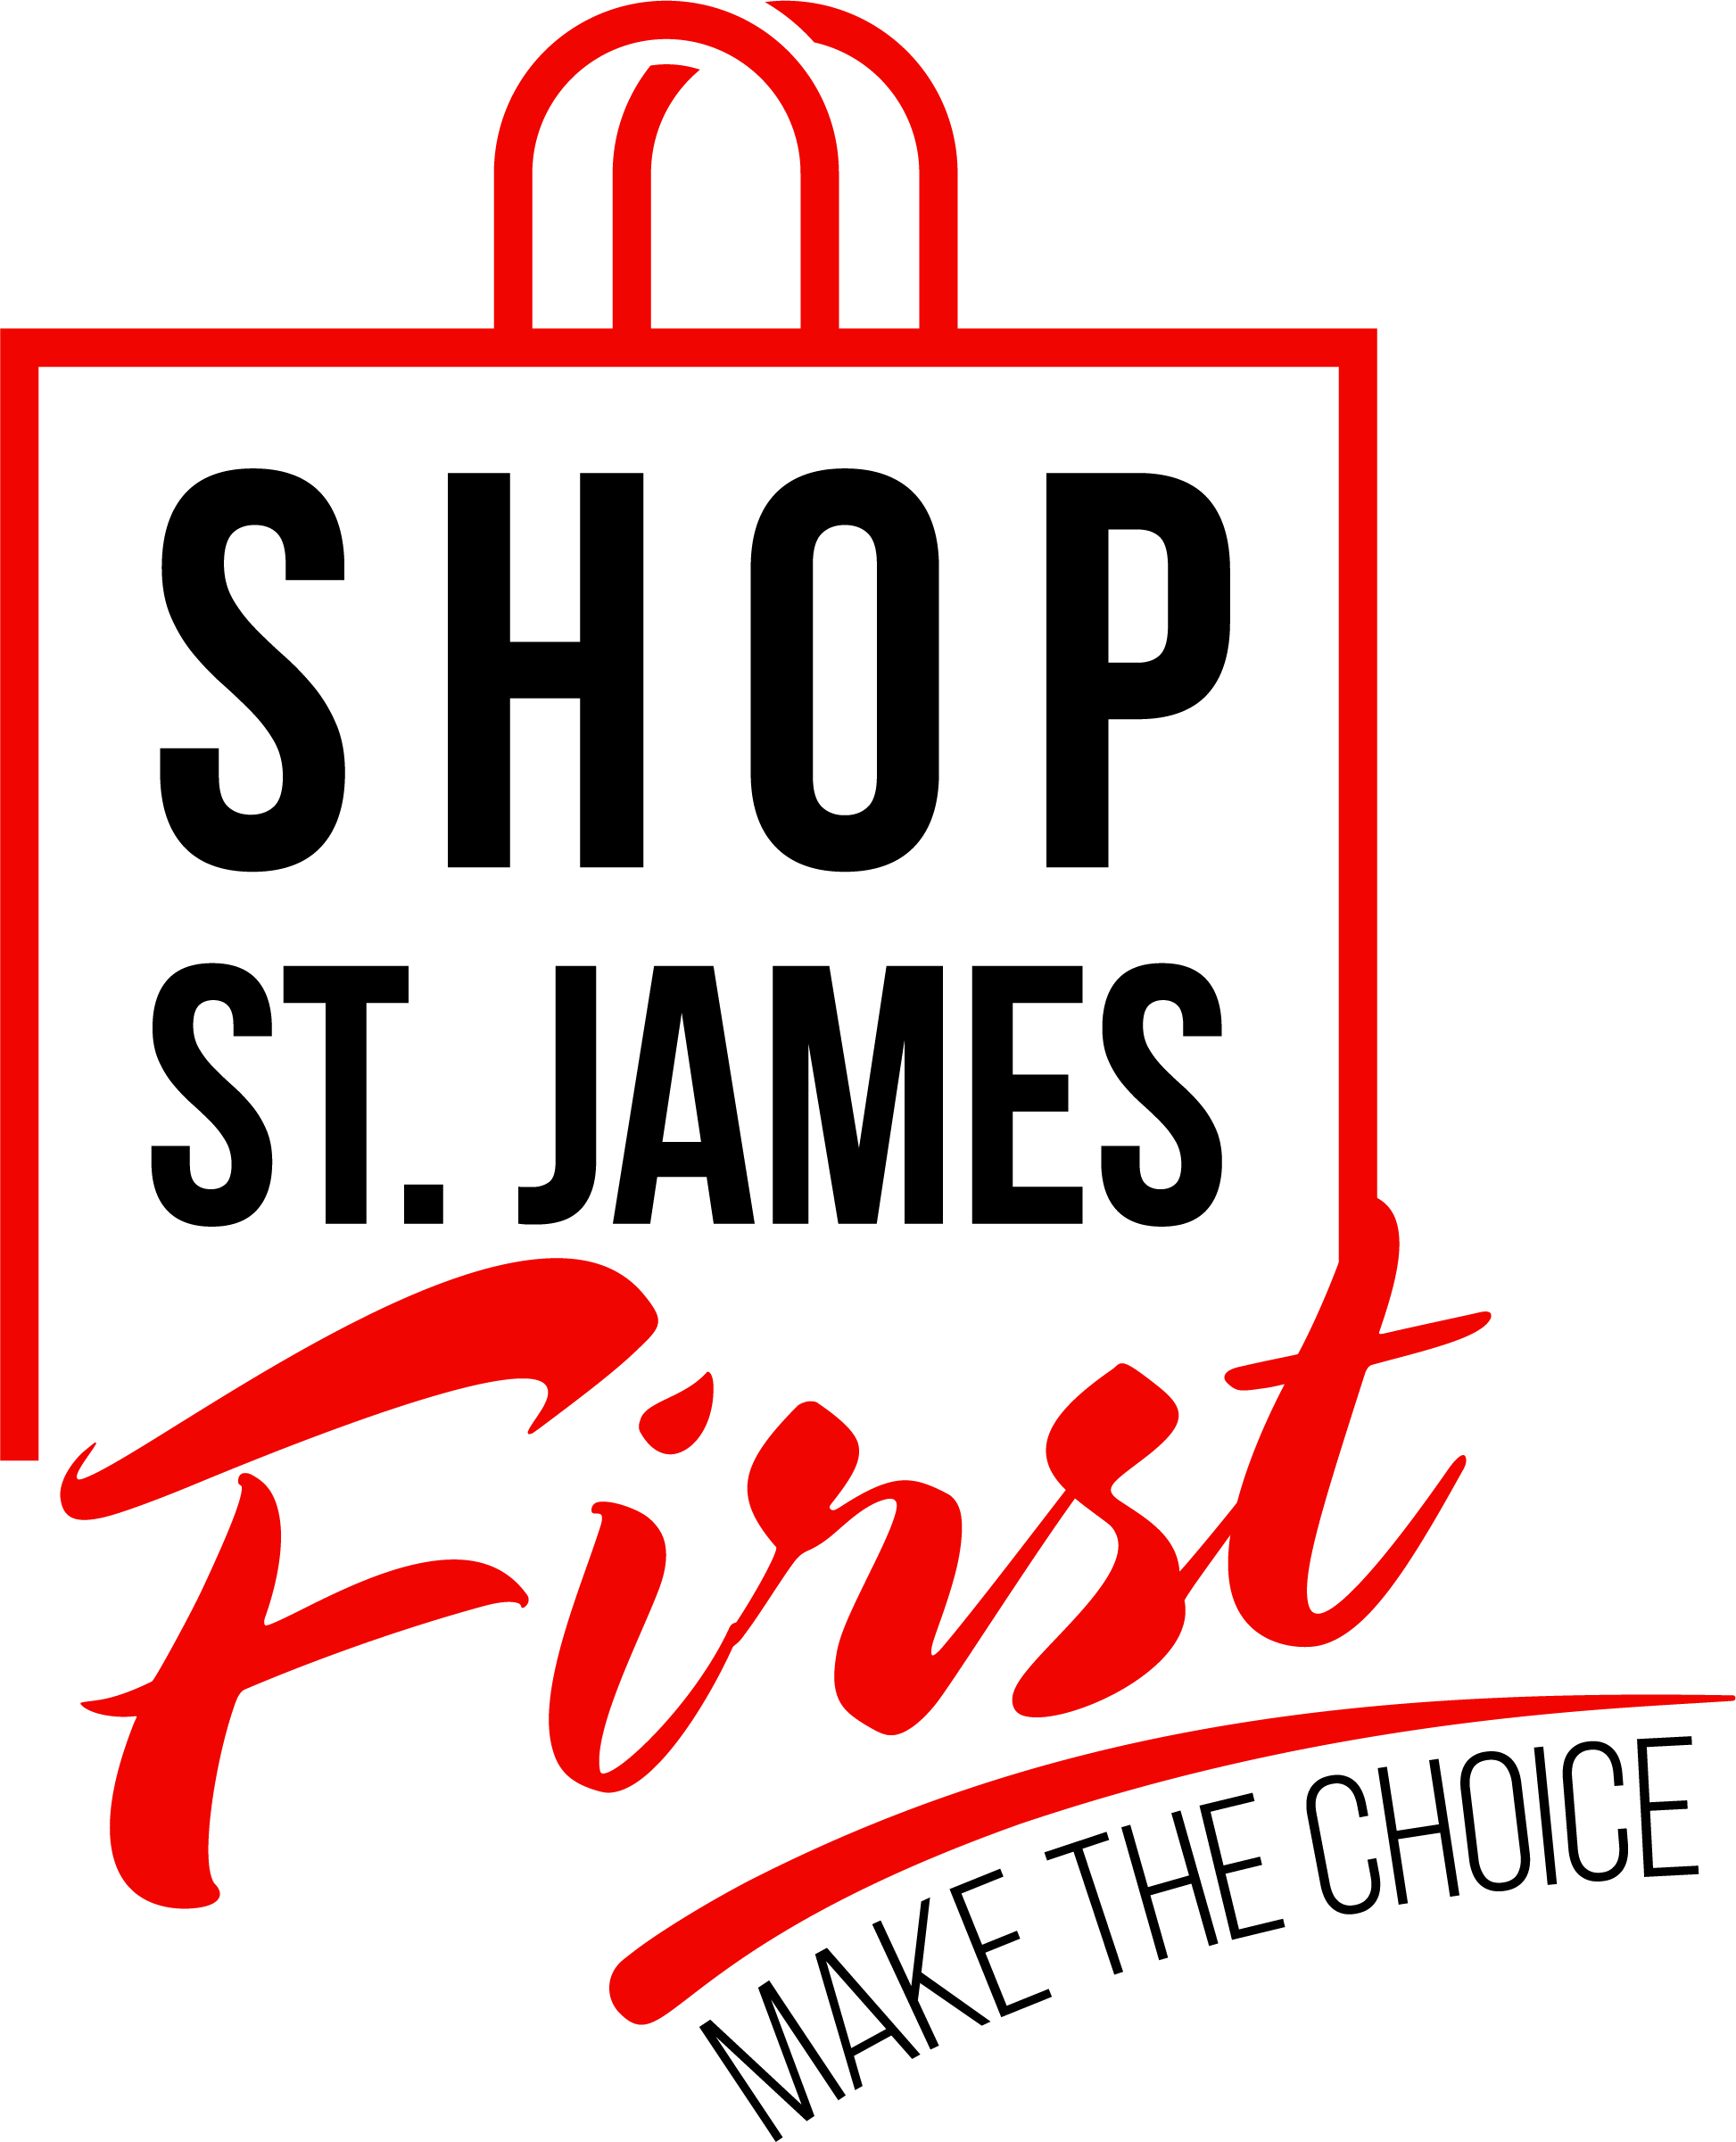 Shop_STJ_LOGO.jpg